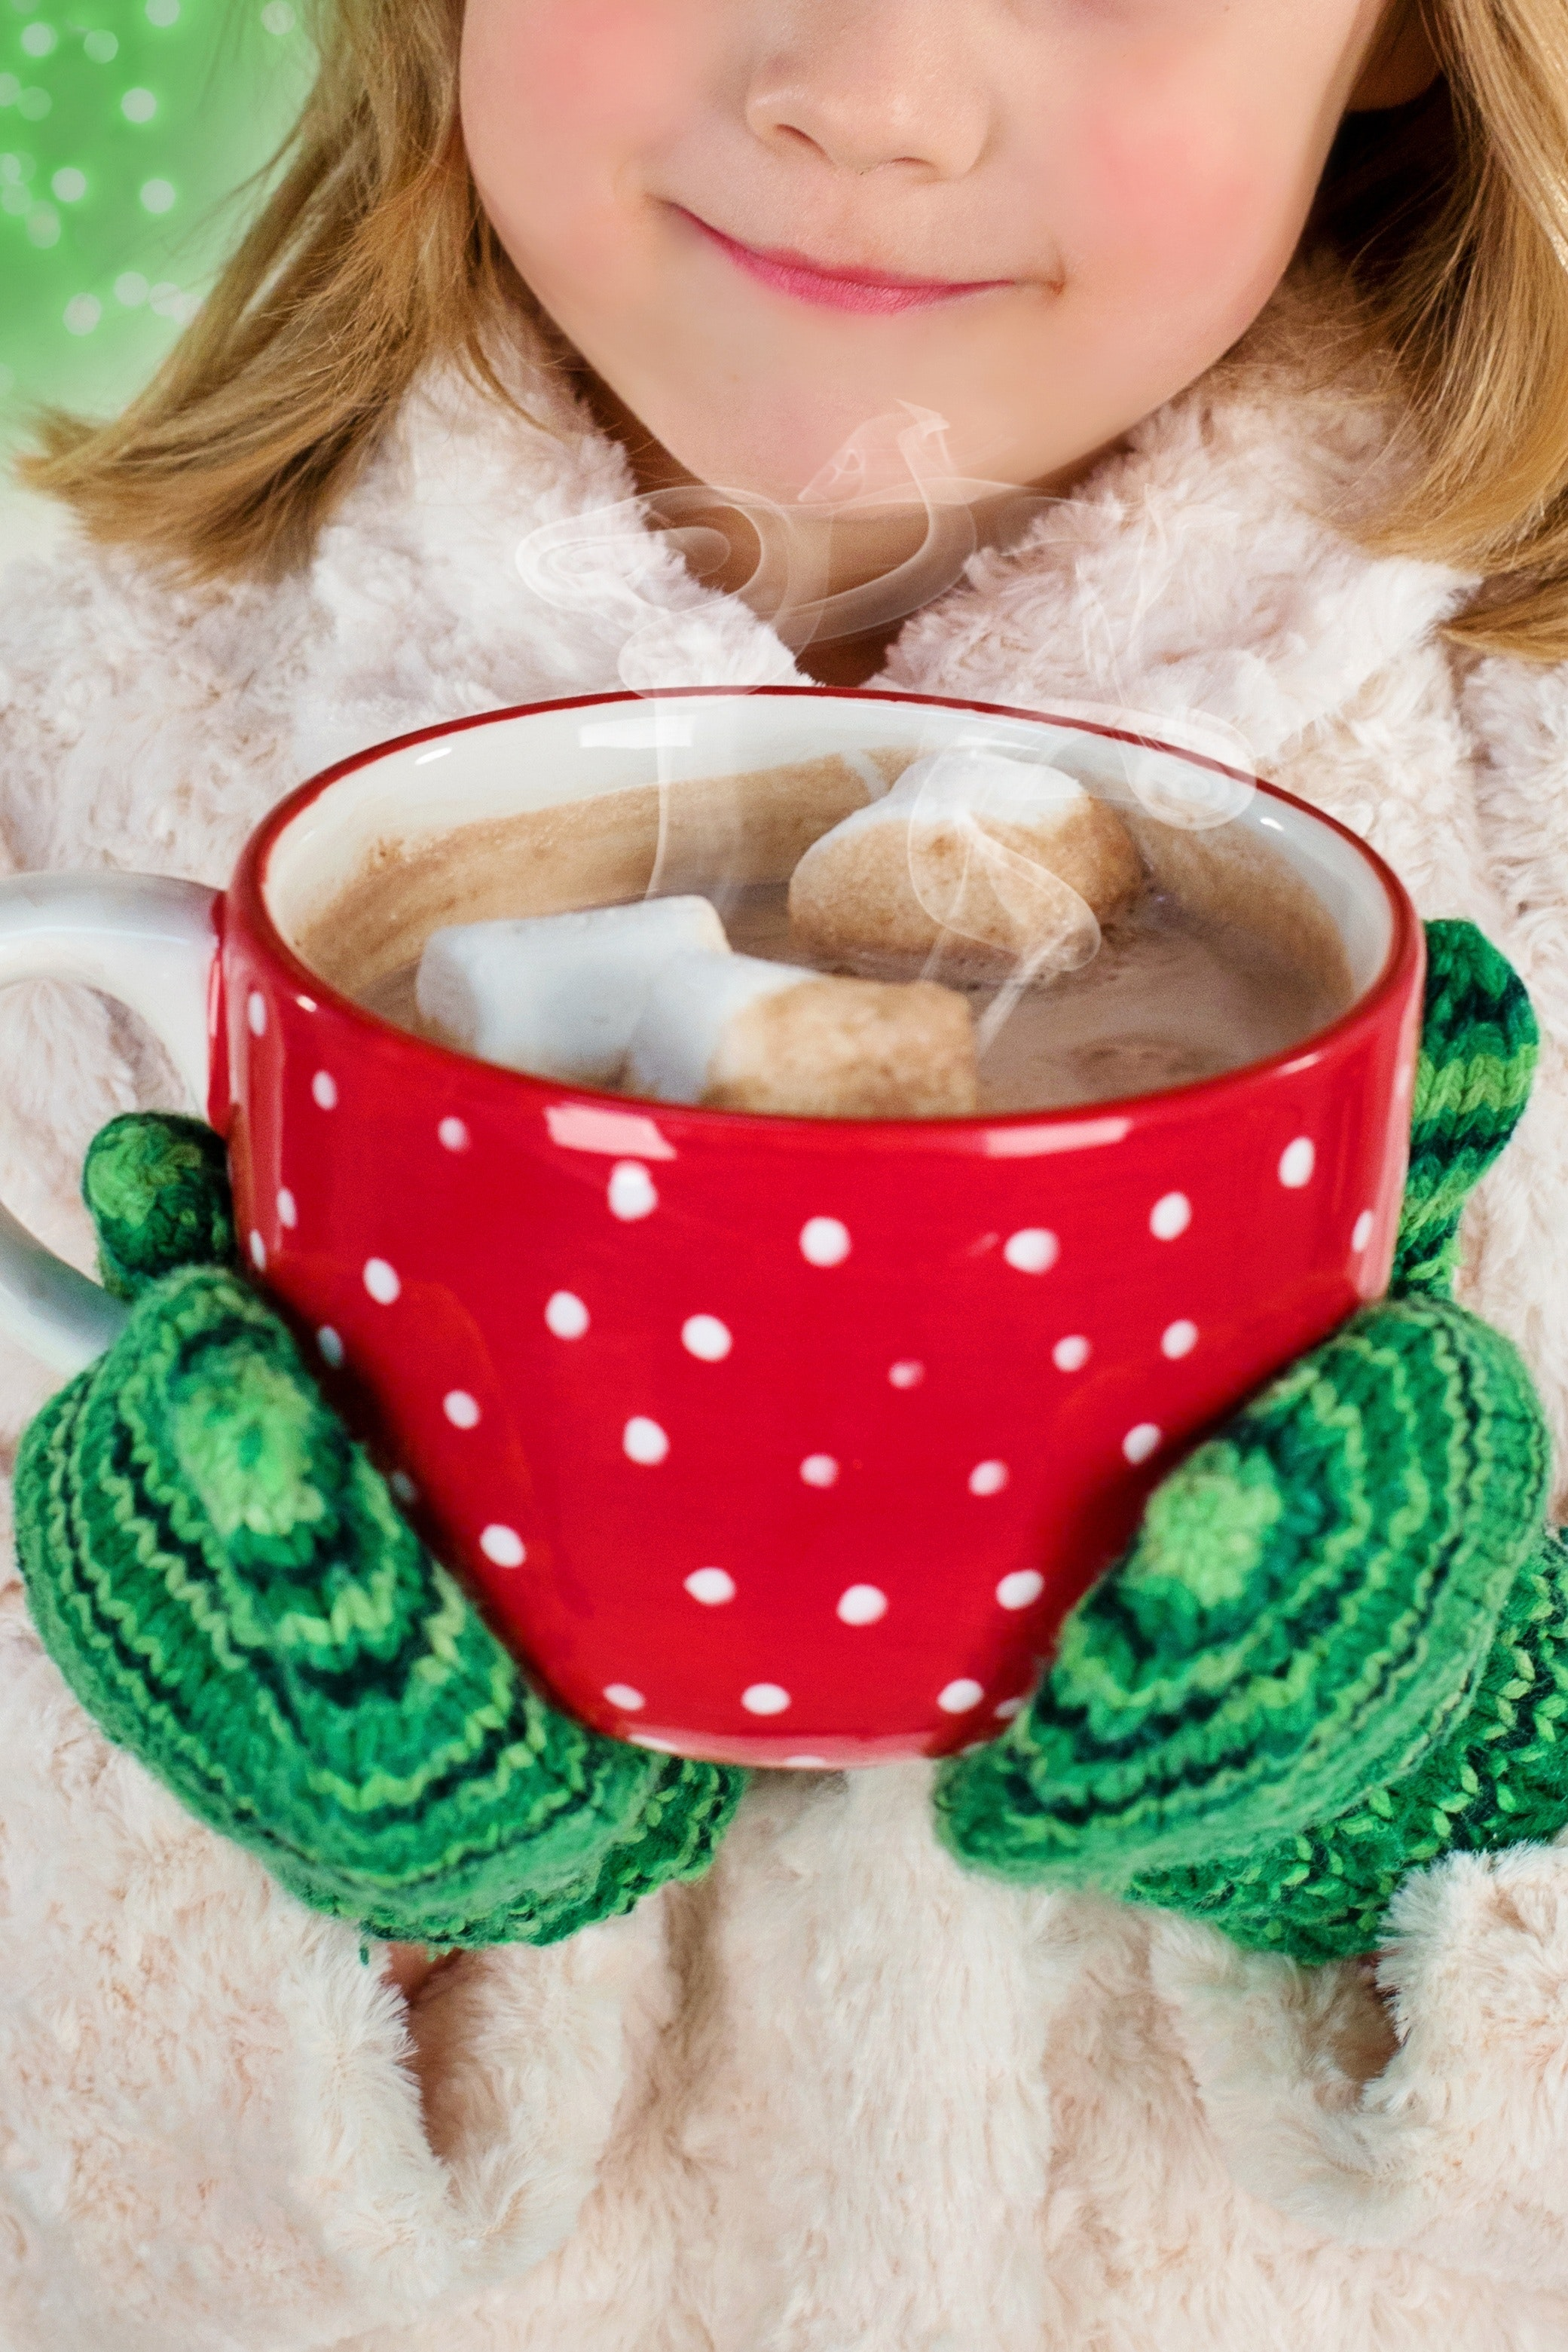 Girl in white coat holding a red mug of hot cocoa with marshmallows